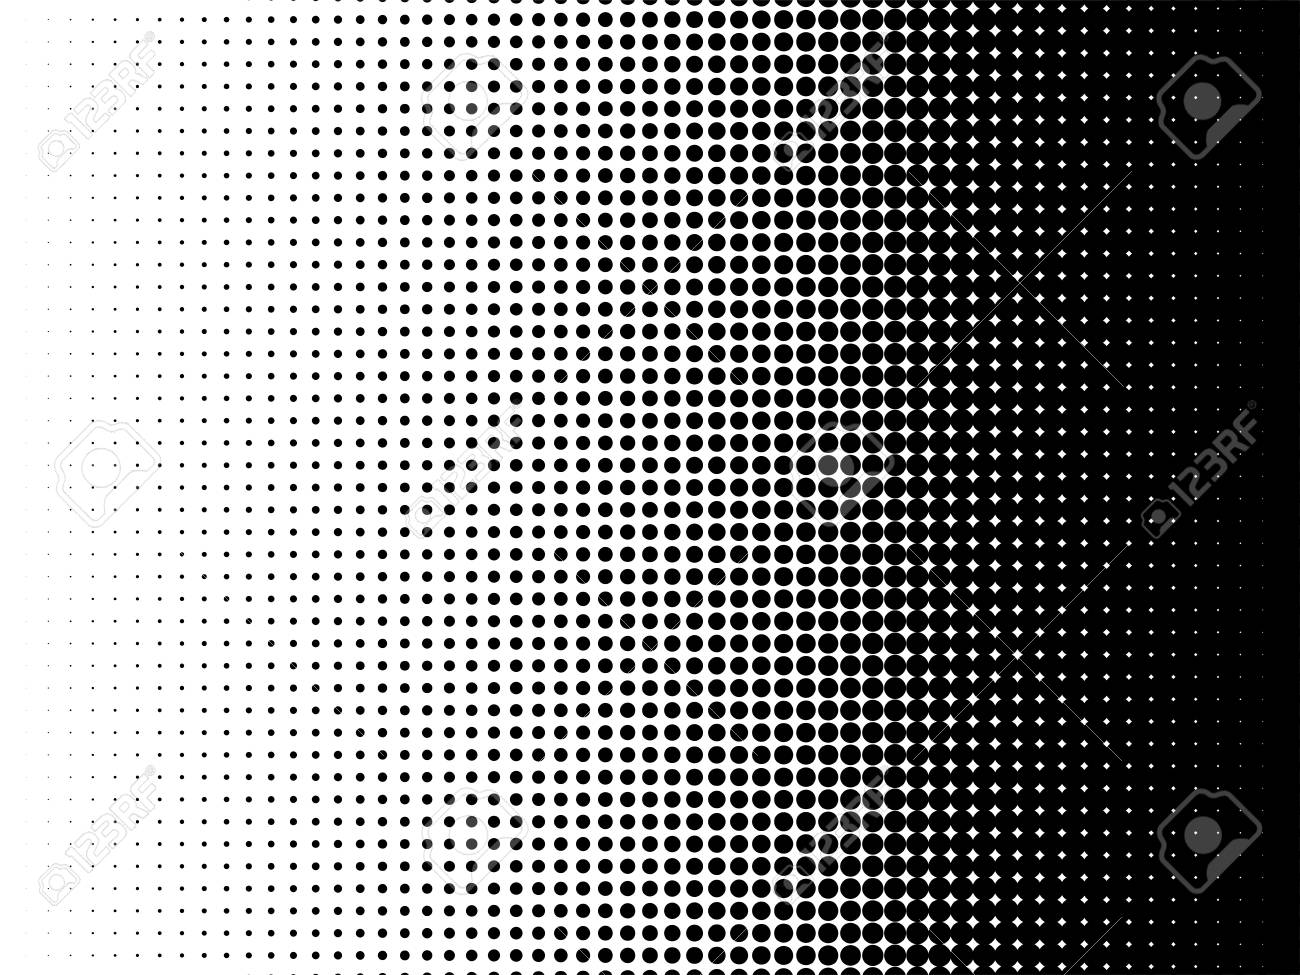 Radial Halftone Pattern Texture Vector Black And White Radial